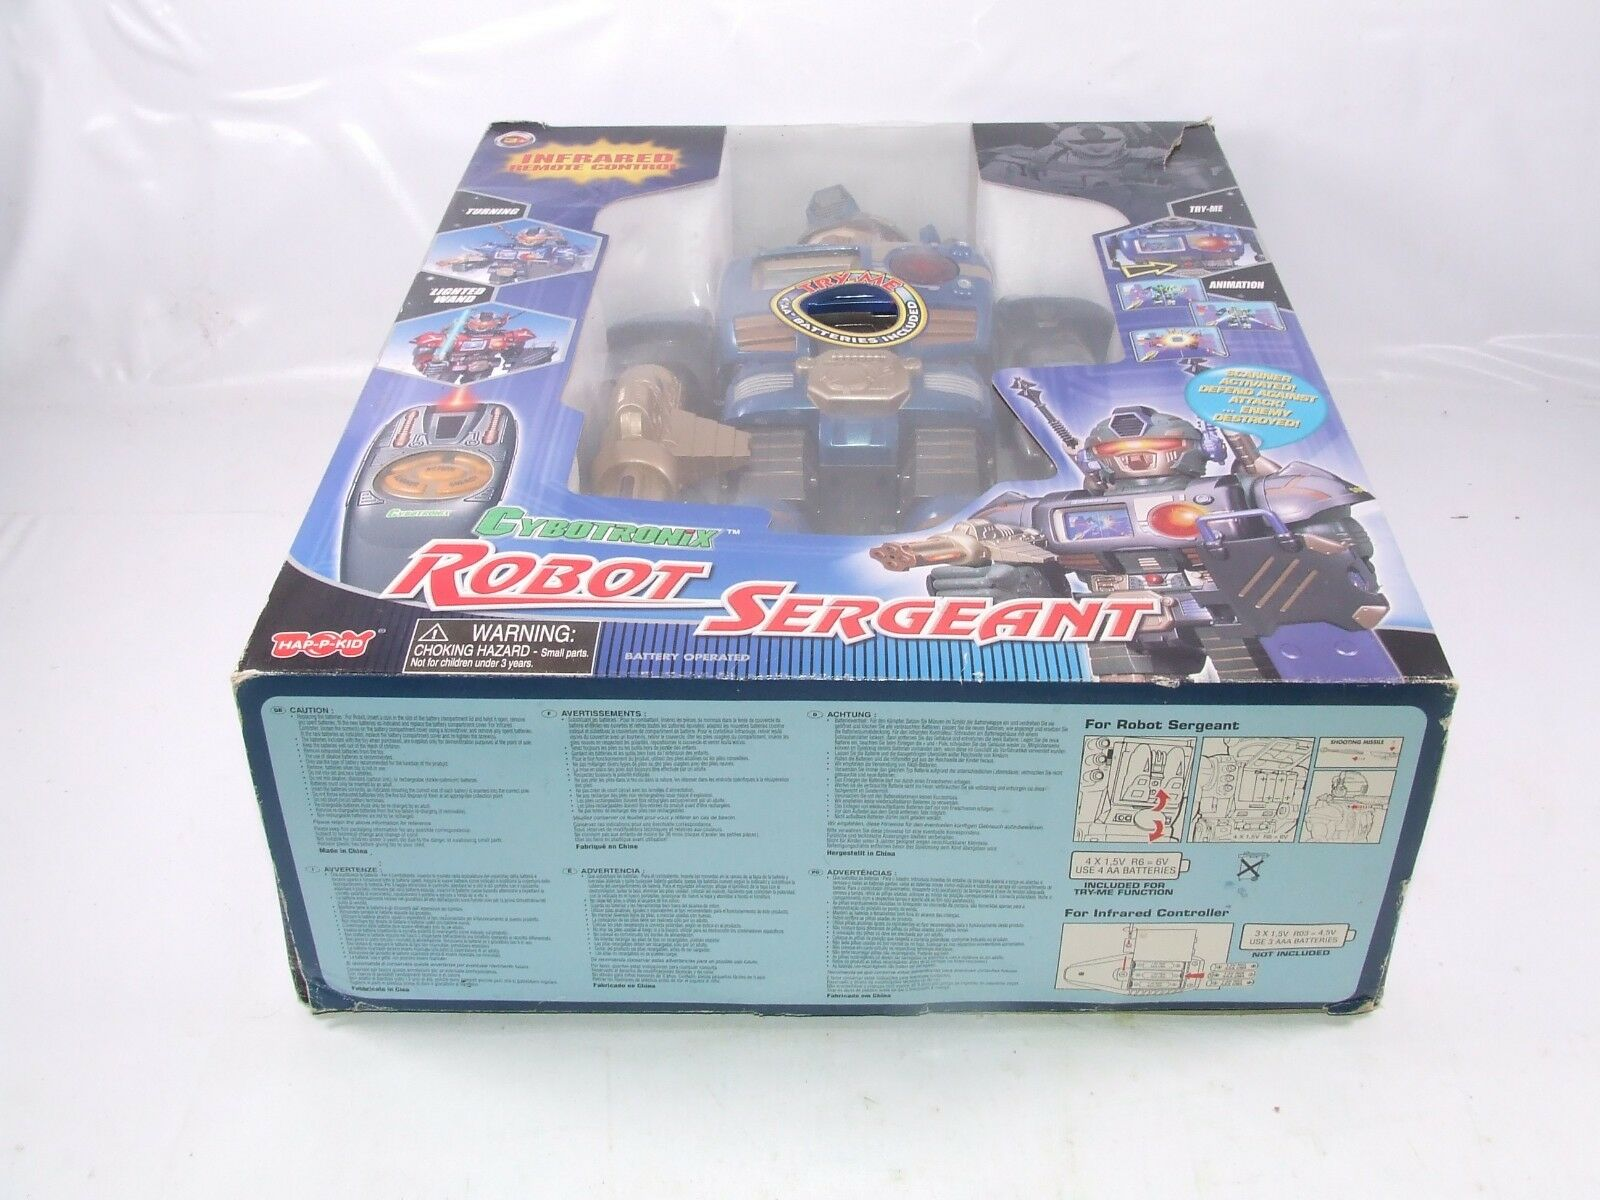 Cybotronix Robot Sergeant 16  Infrared Remote Control Robot Boxed Boxed Boxed Rare 5a9fa0